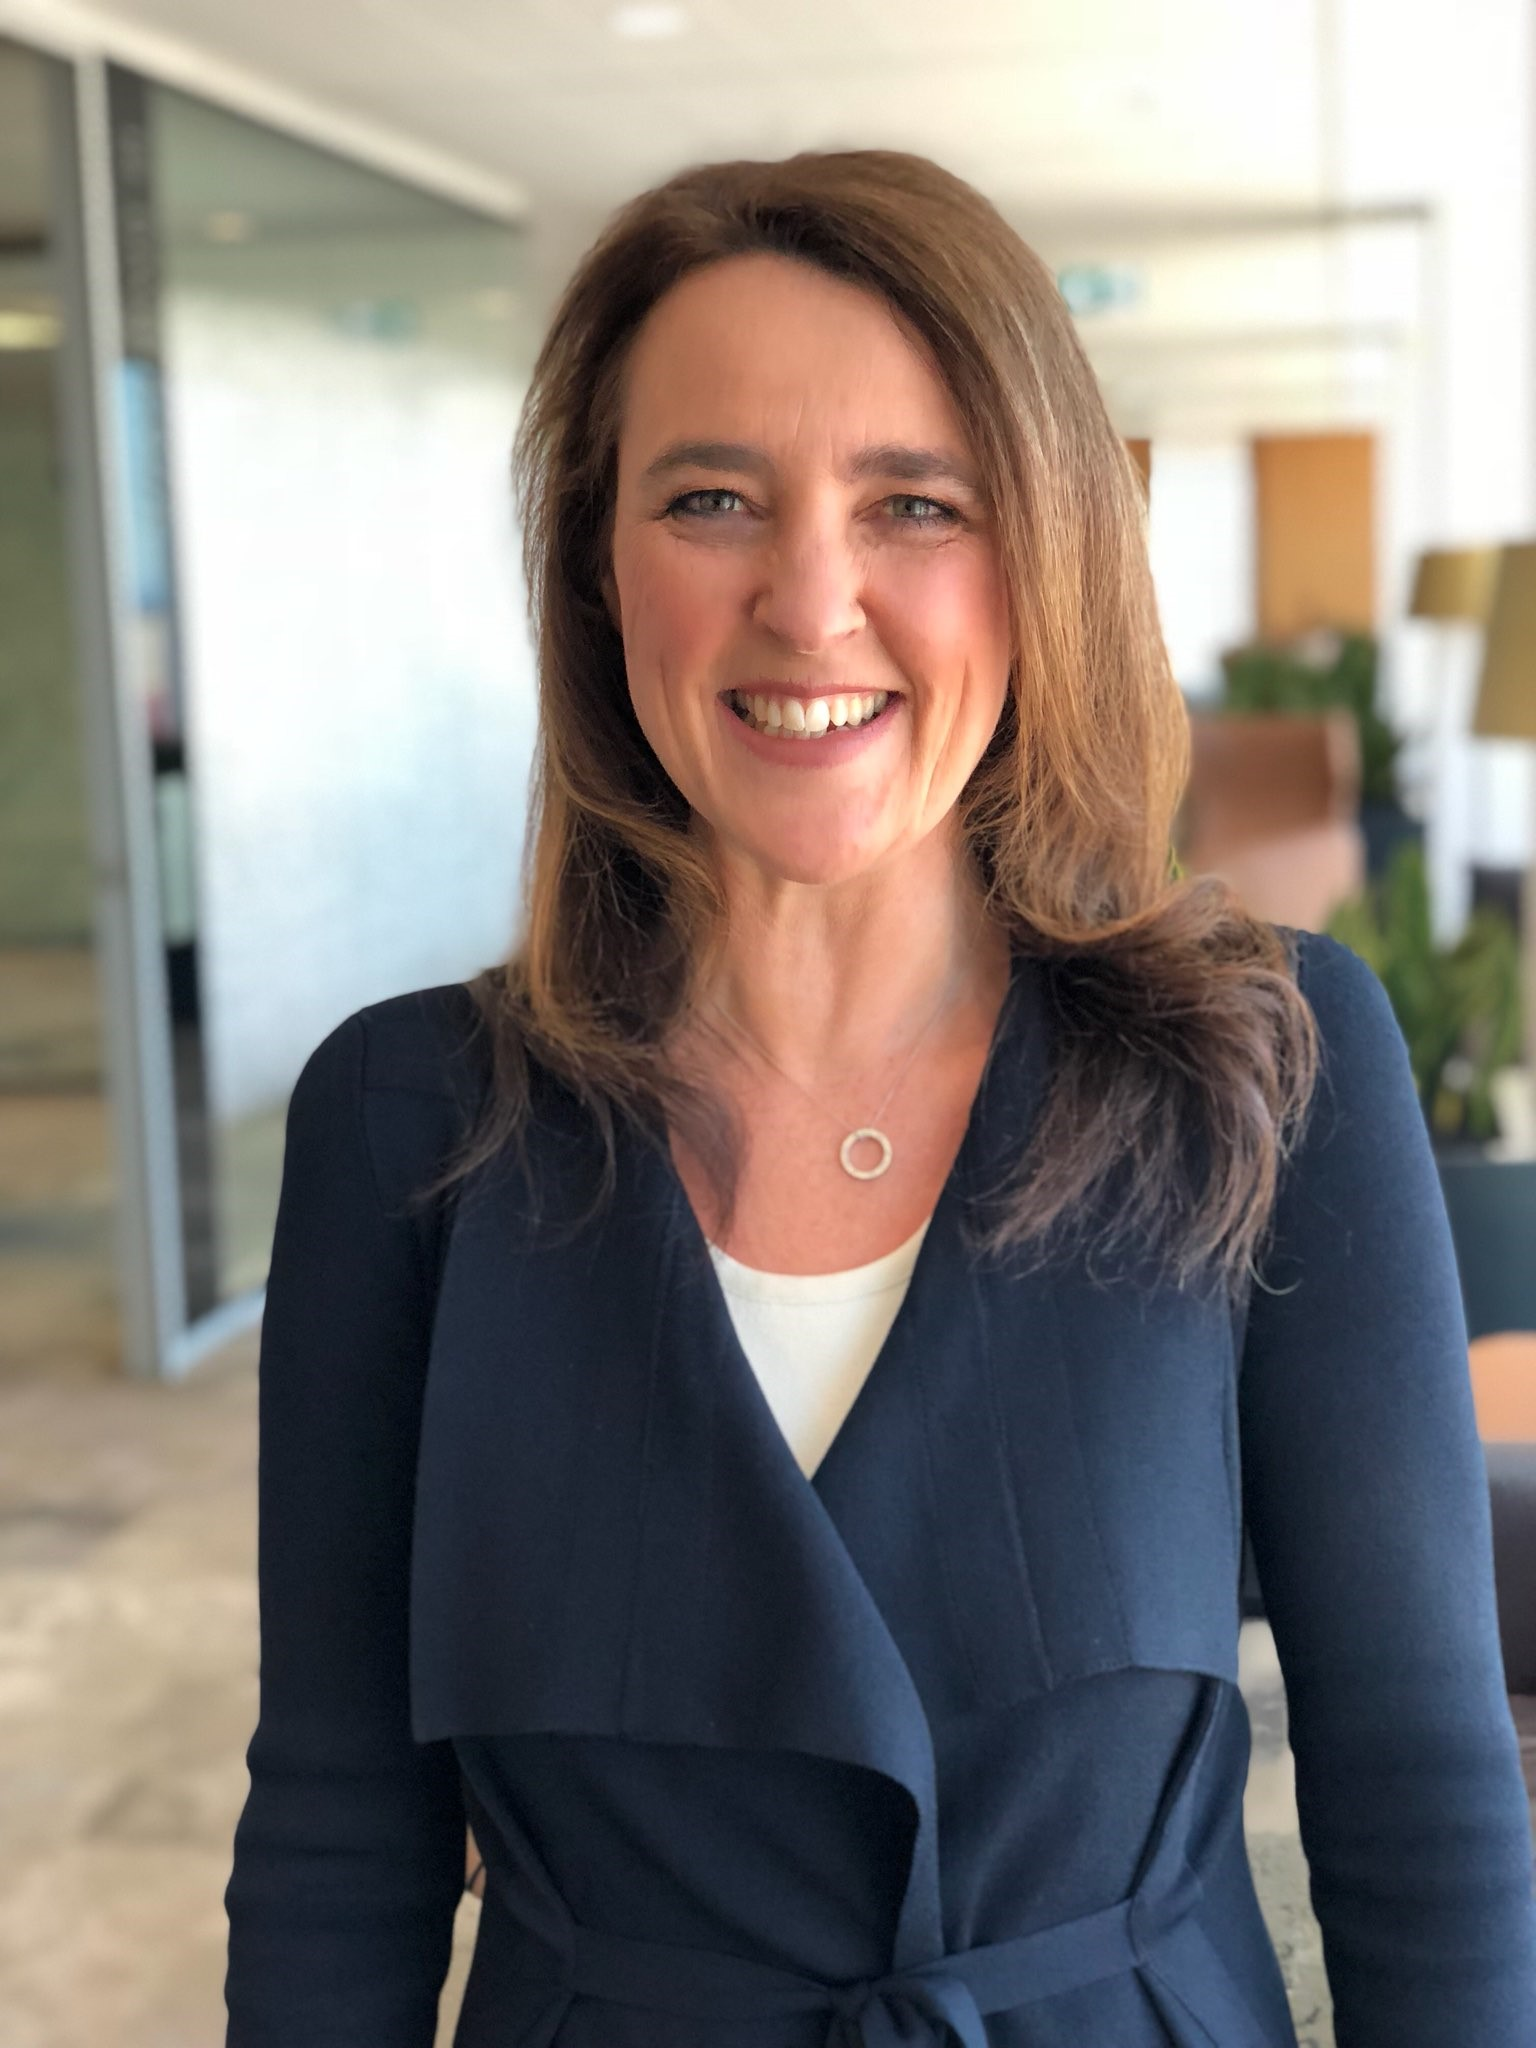 Fiona Vines, Head of Inclusion & Diversity at BHP